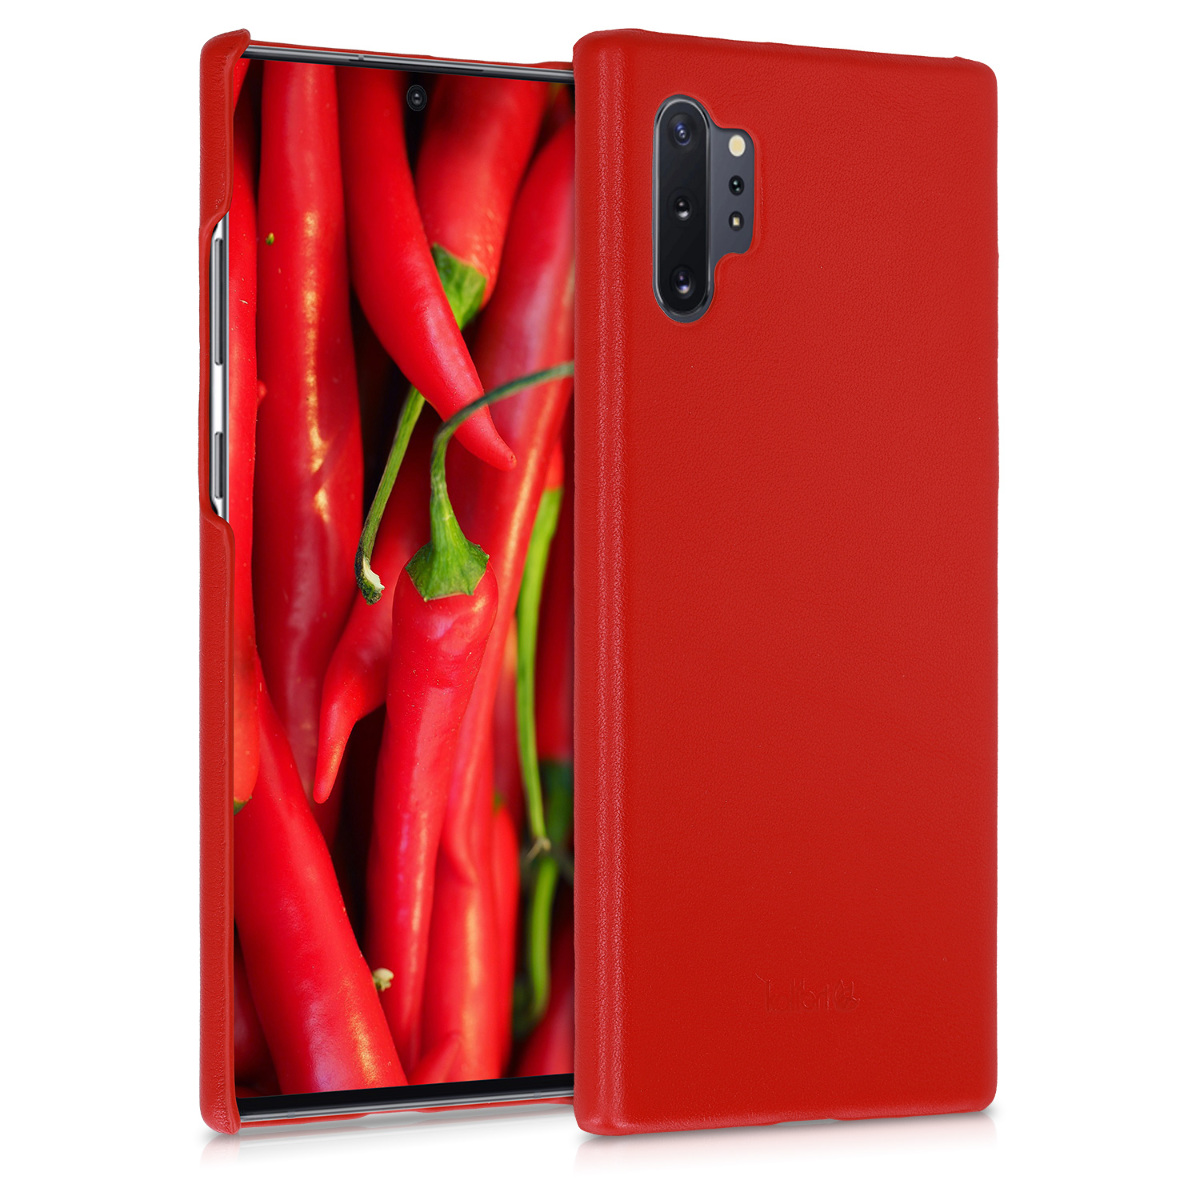 Kalibri Σκληρή Δερμάτινη Θήκη Samsung Galaxy Note 10 Plus - Smooth Genuine Leather - Red (50039.09)